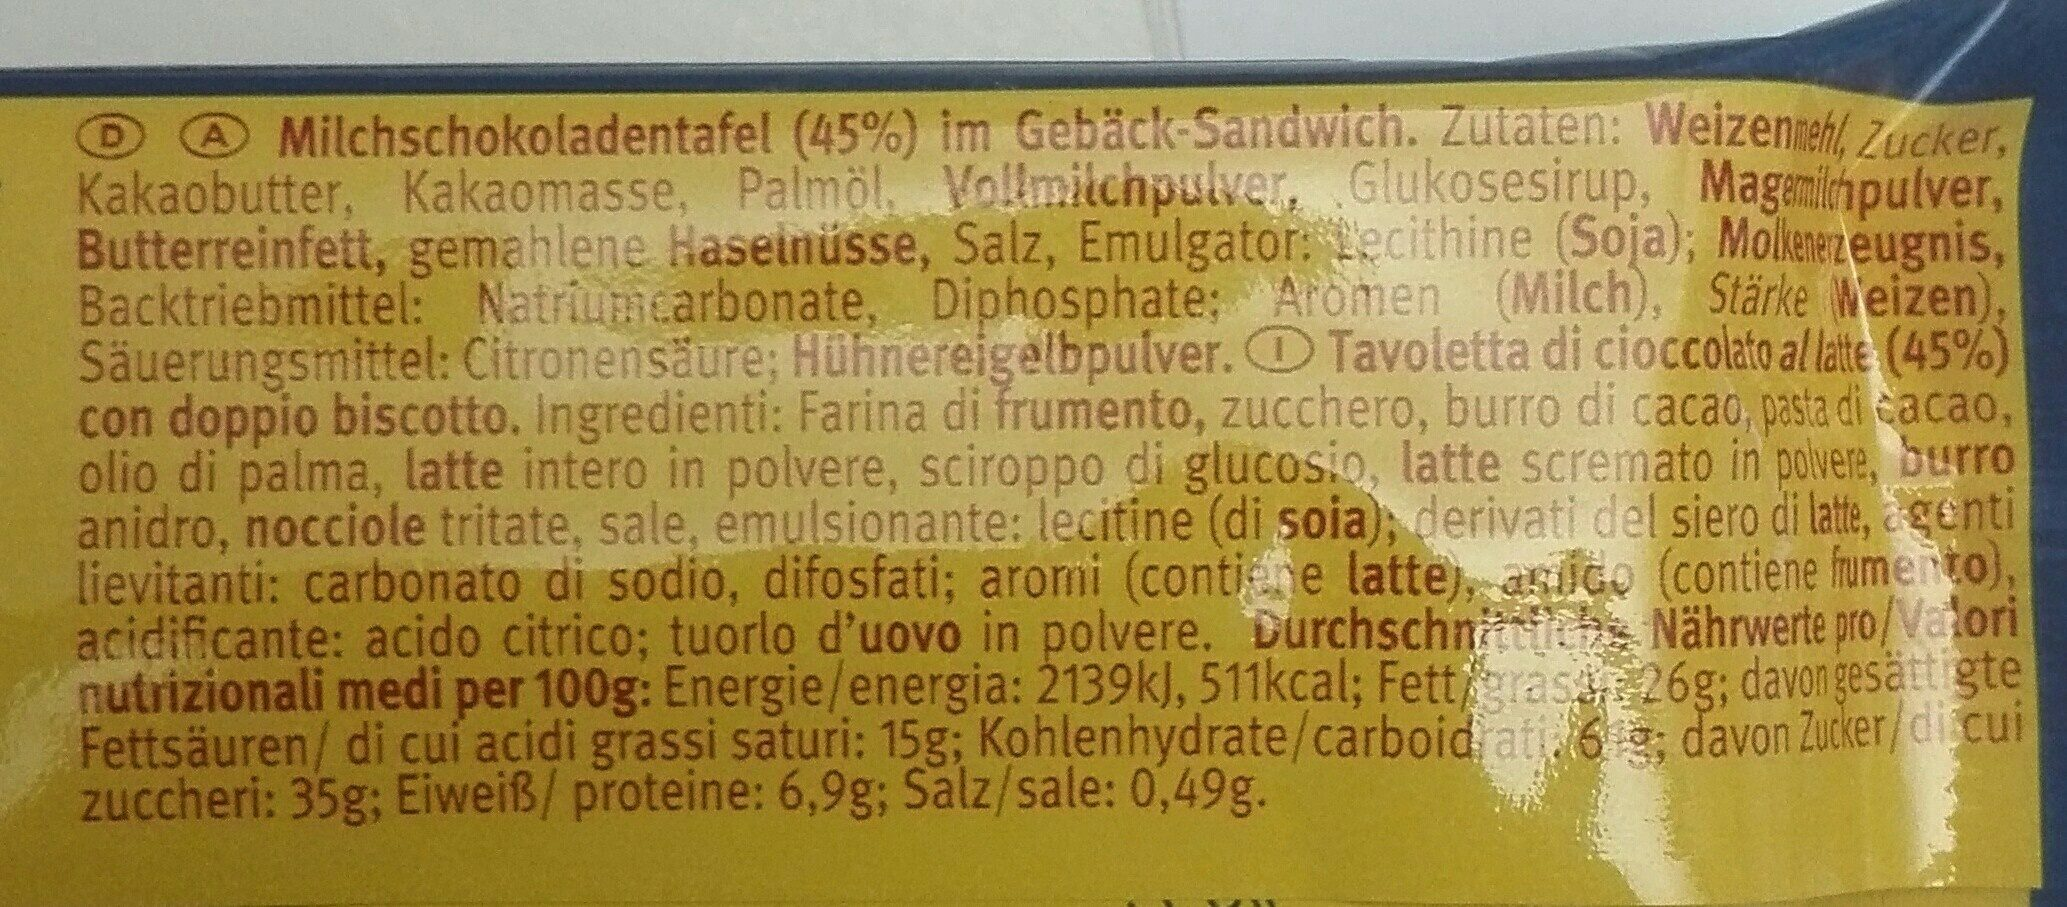 Pick Up Choco - Ingredients